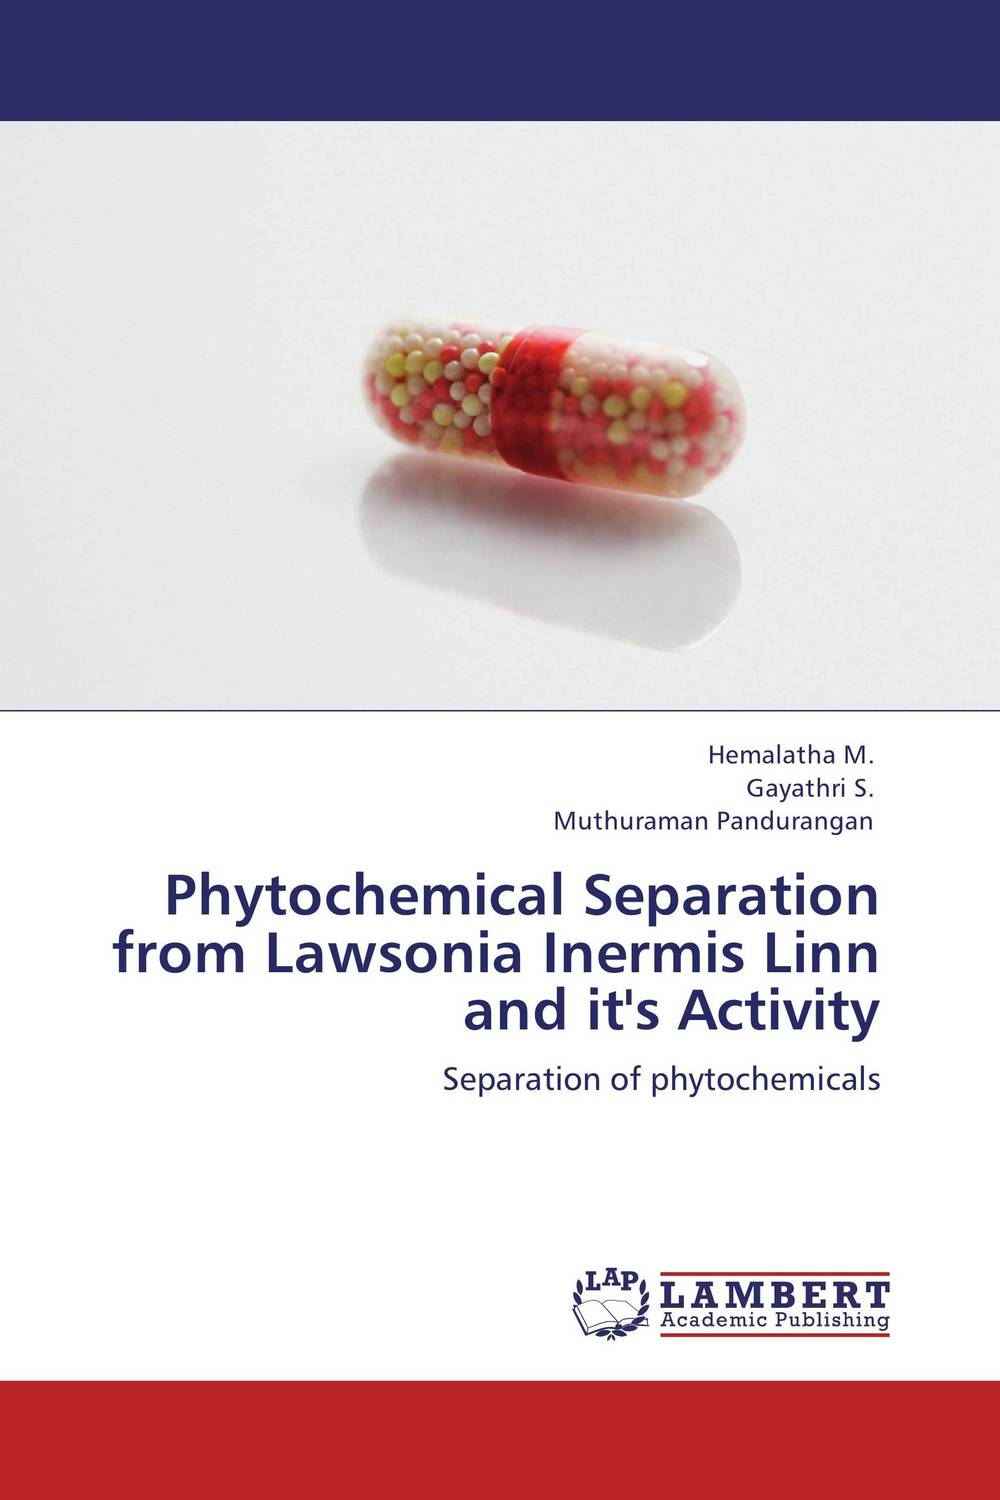 Phytochemical Separation from Lawsonia Inermis Linn and it's Activity